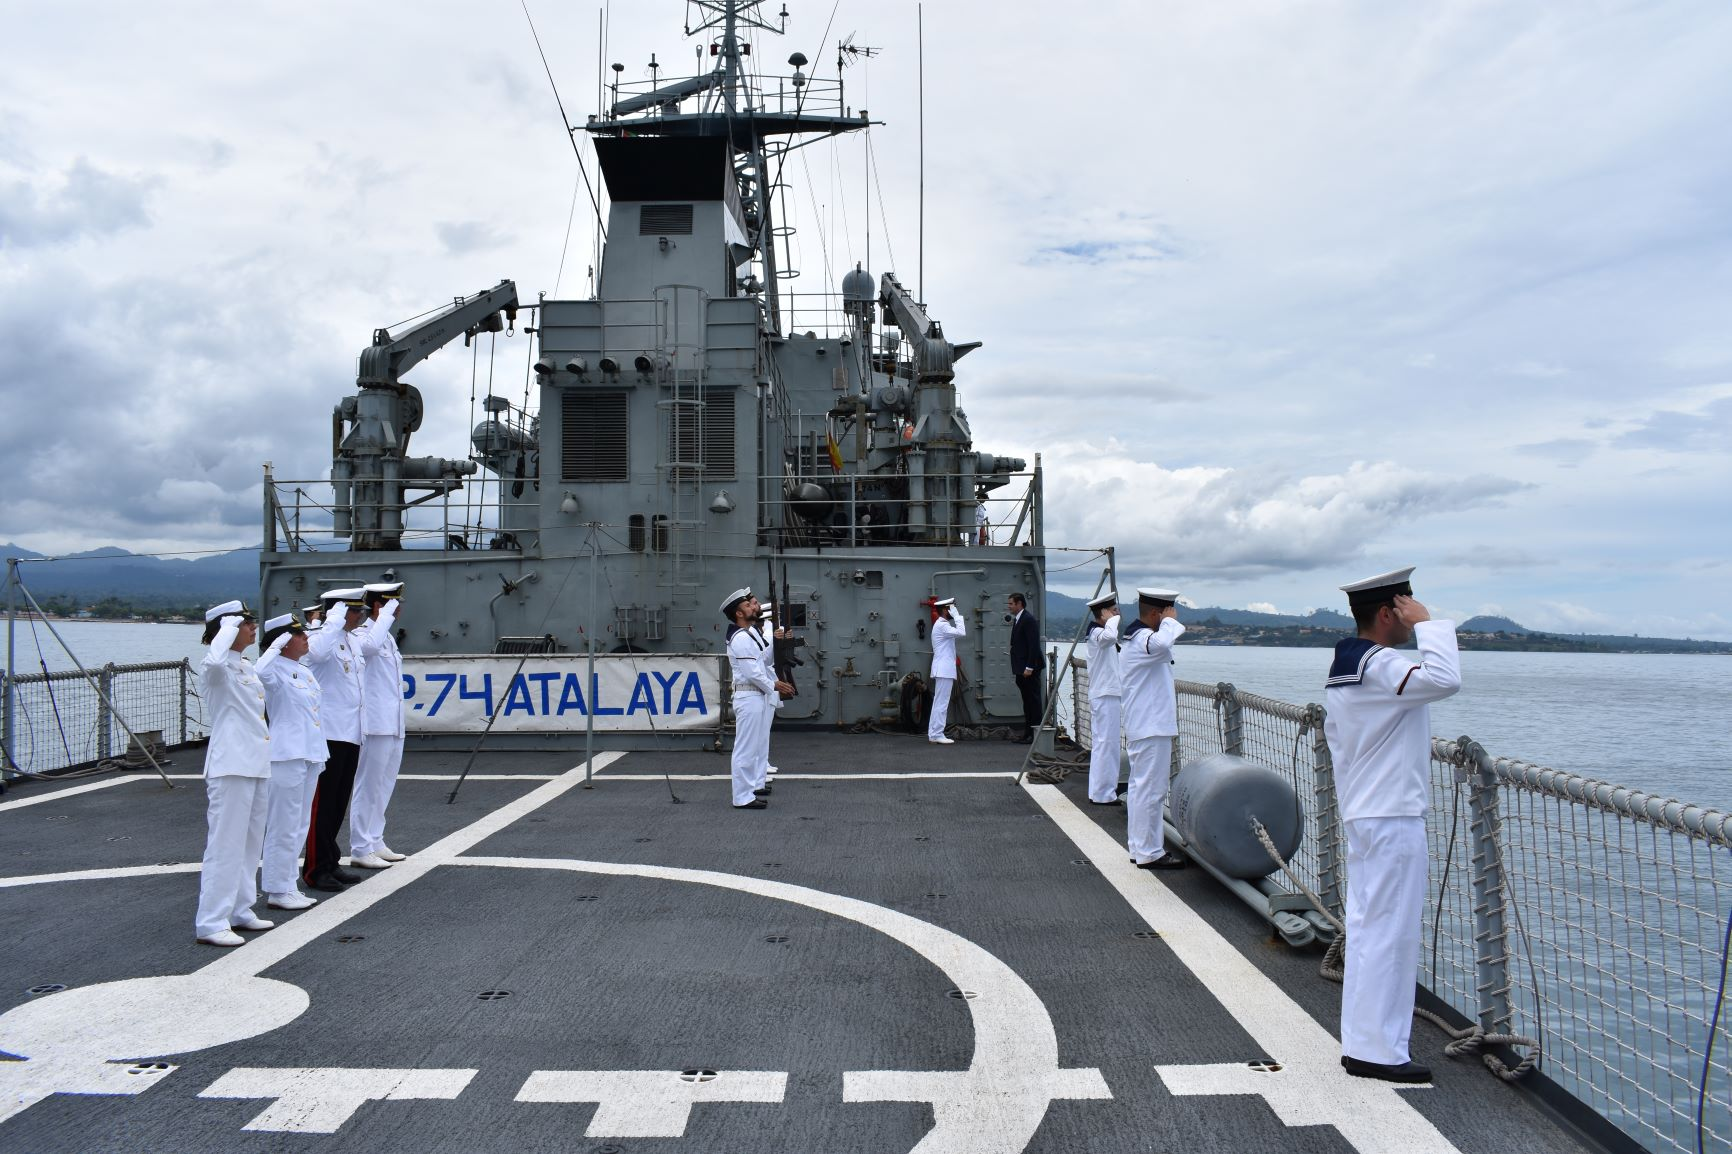 The 'Atalaya' collaborates with São Tomé and Príncipe Armed Forces